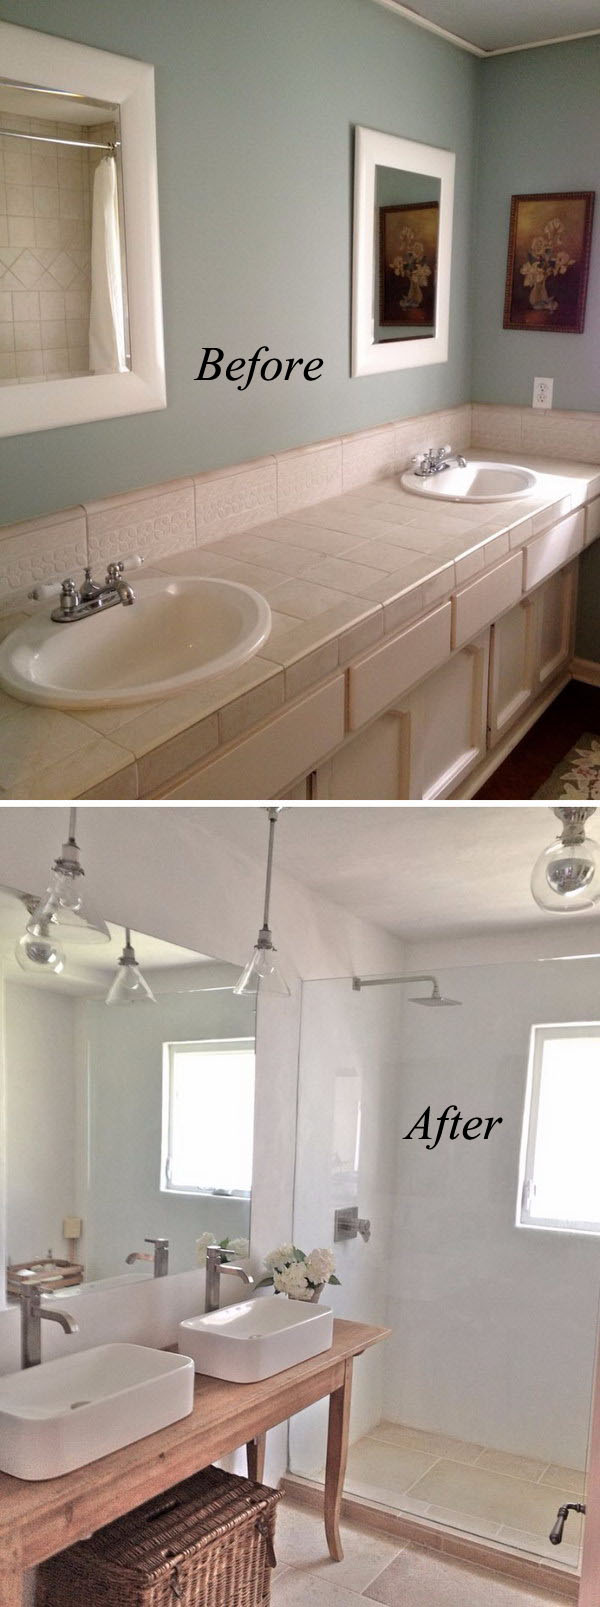 Before And After Dramatic Bathroom Makeovers - Tiny bathroom makeover